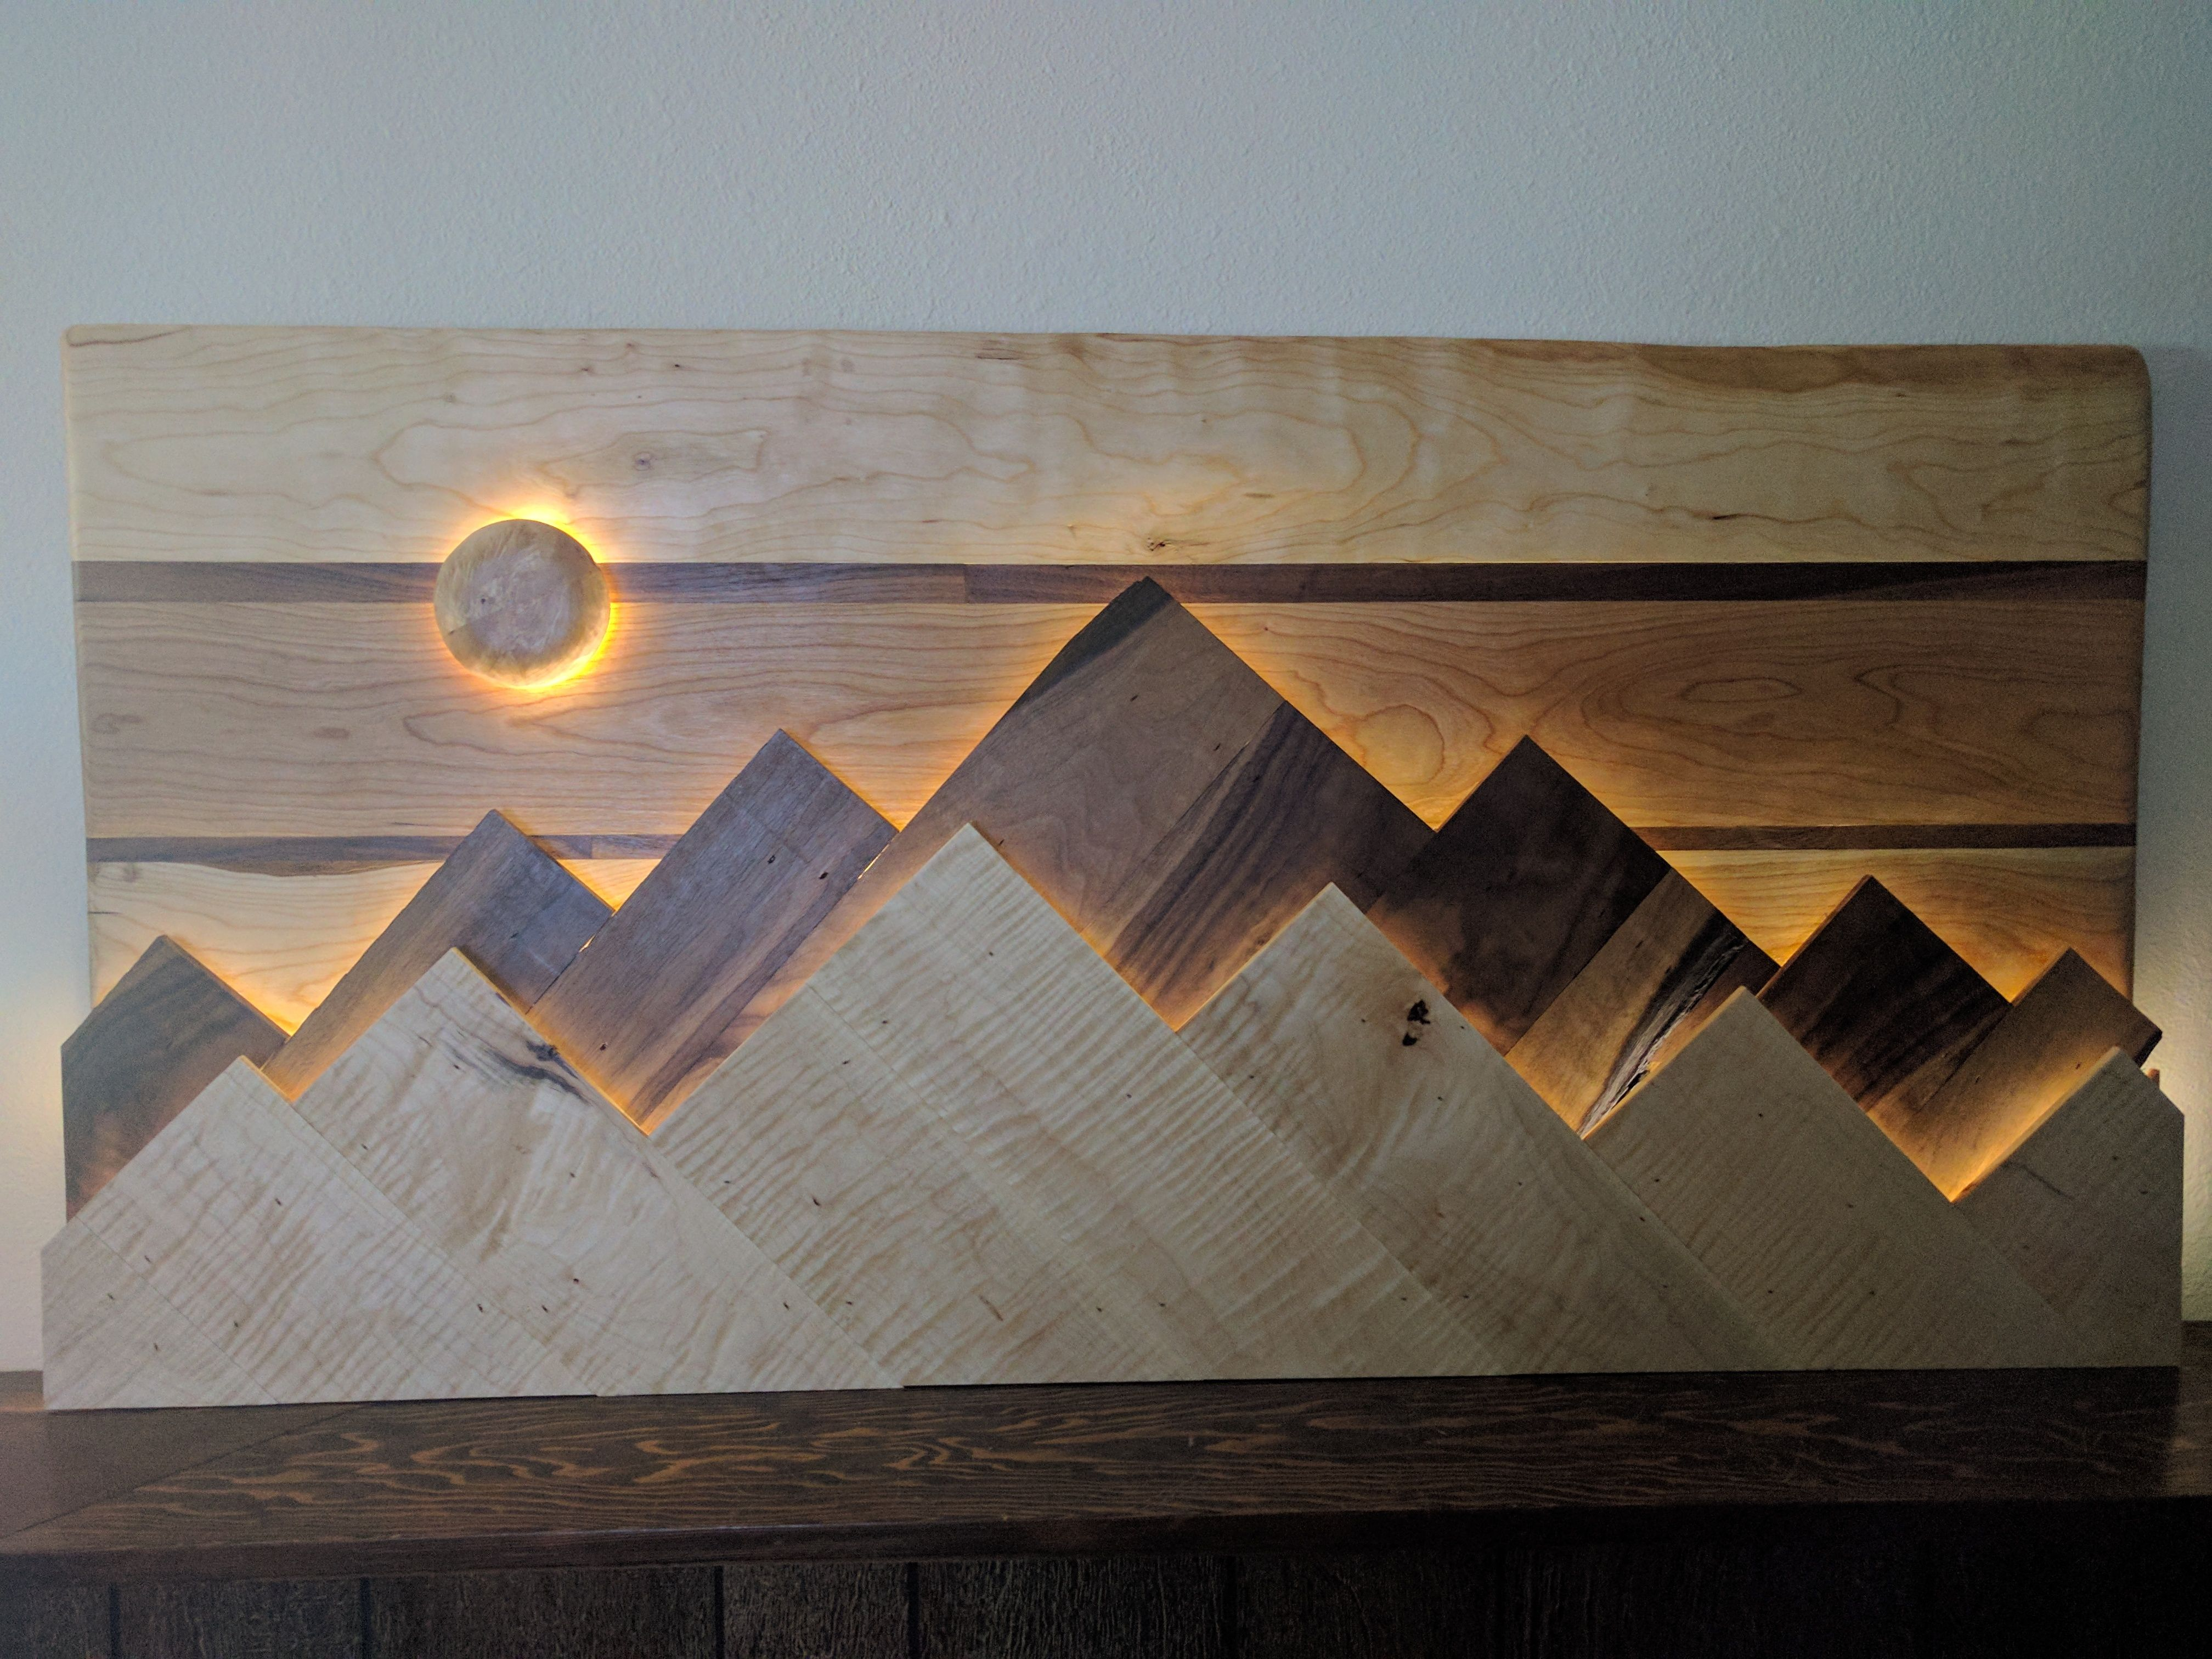 Wood mountain range wall art. The sun/moon functions as a dimmer switch for